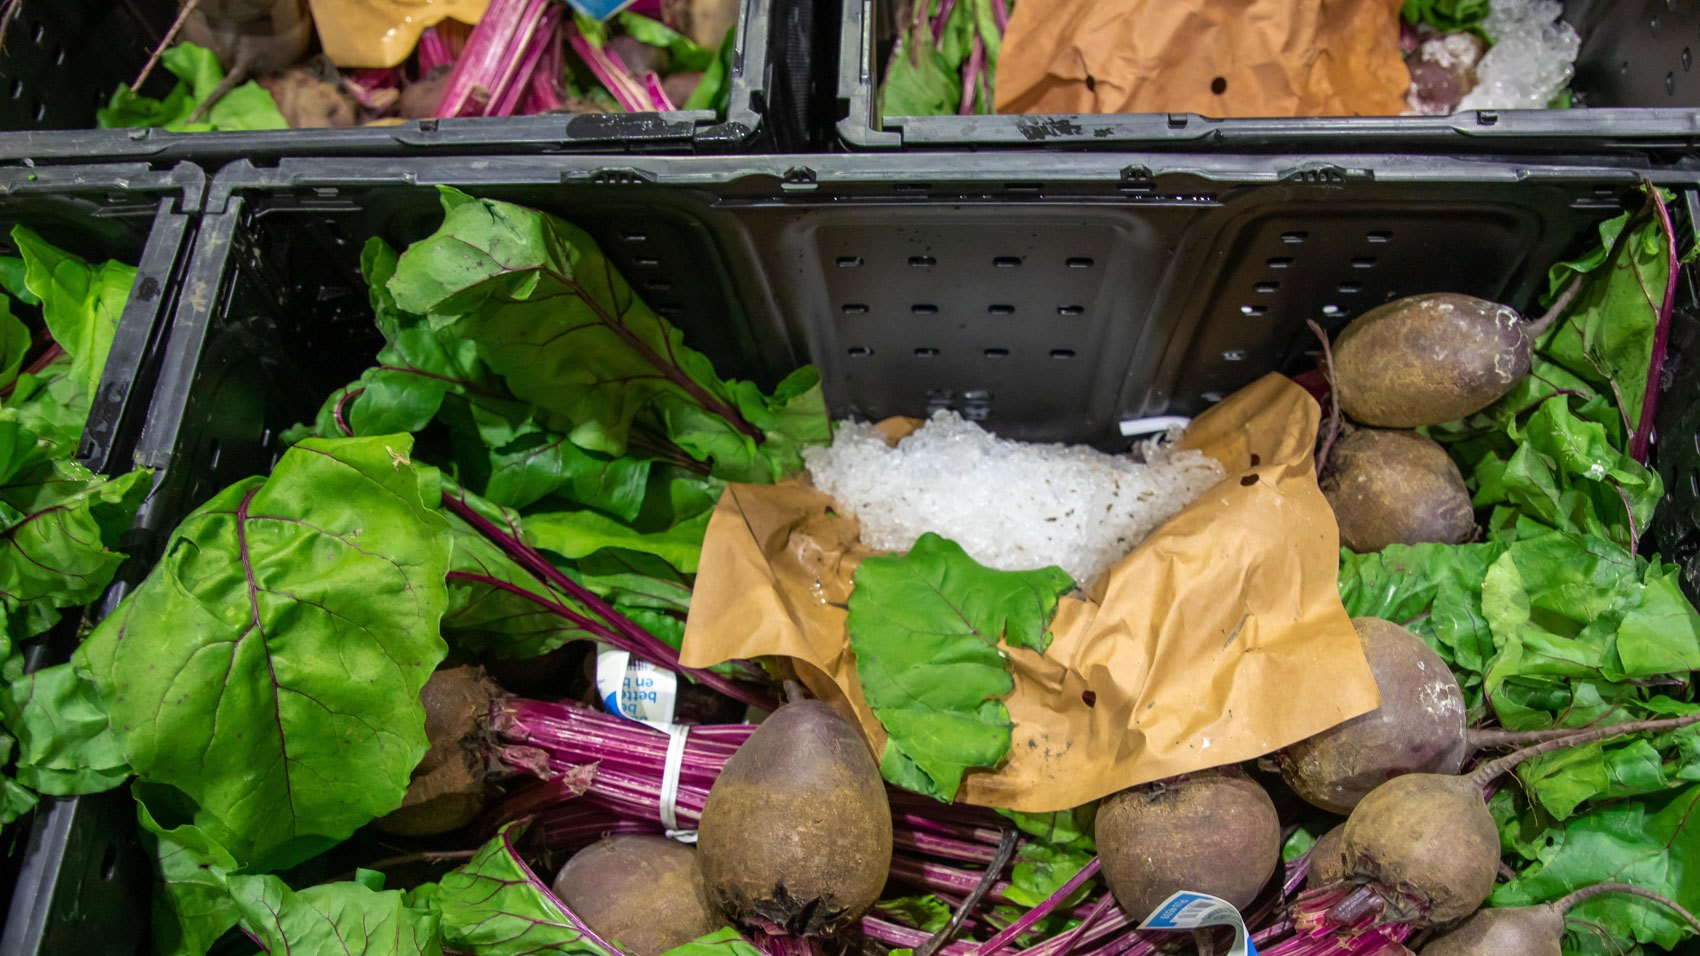 Waste/beets-shipping.jpg